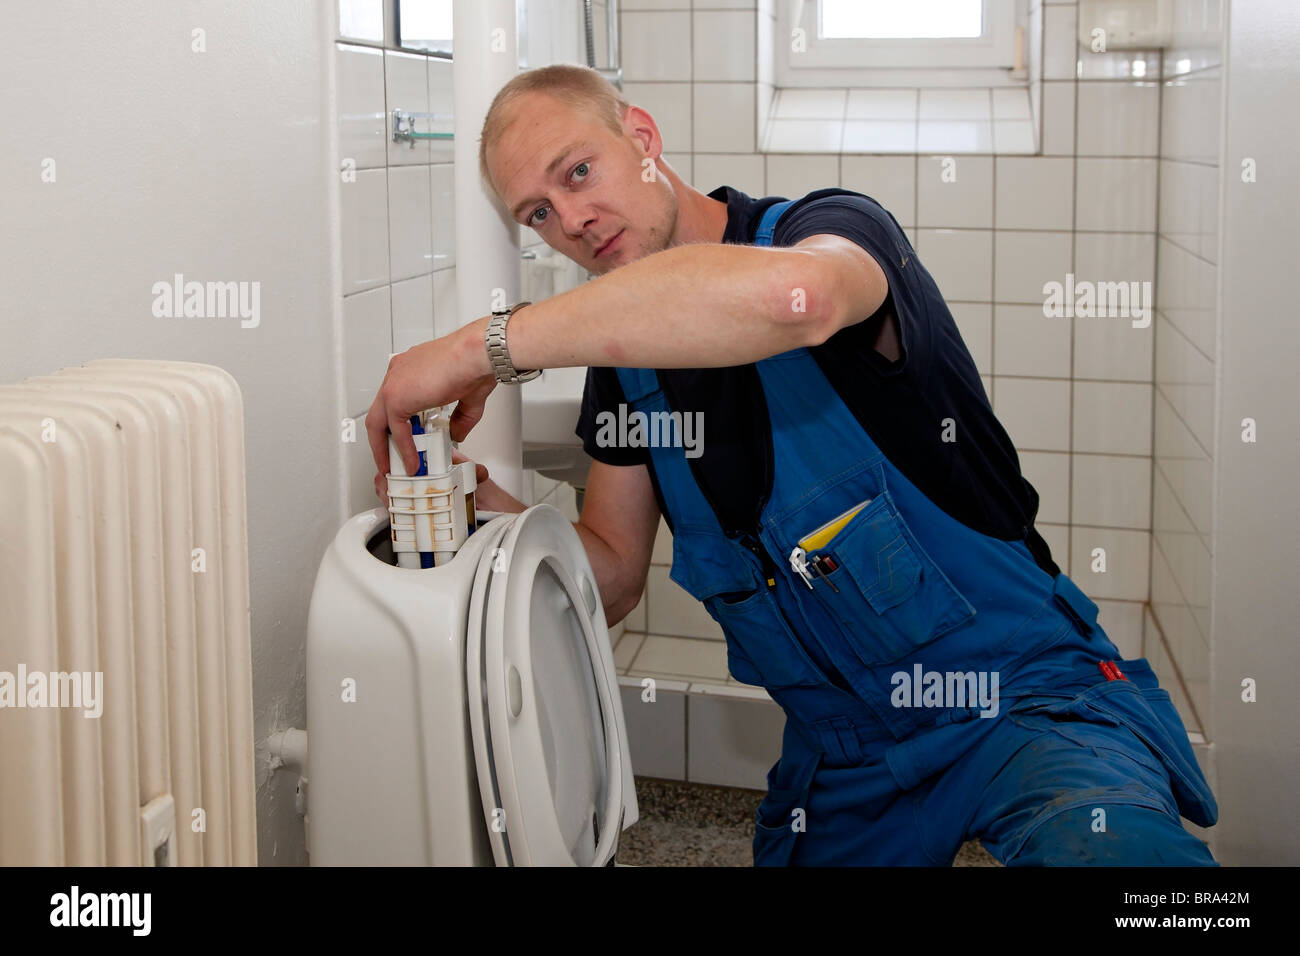 Heating and sanitary technician repairing the toilet cistern - Stock Image